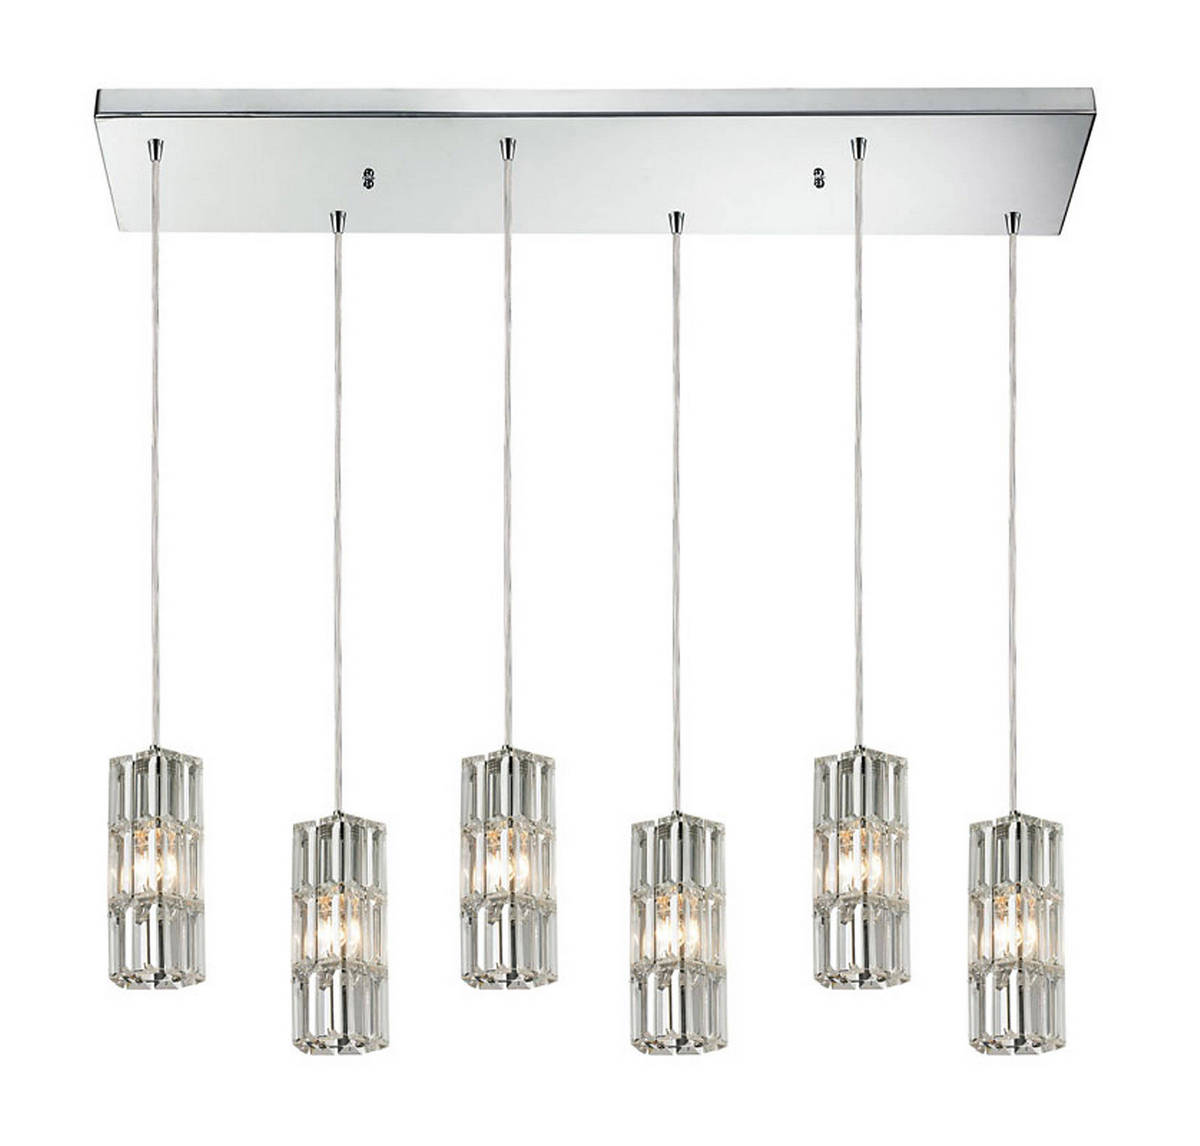 Elk Cynthia 6-Light Linear Round Pendant in Polished Chrome